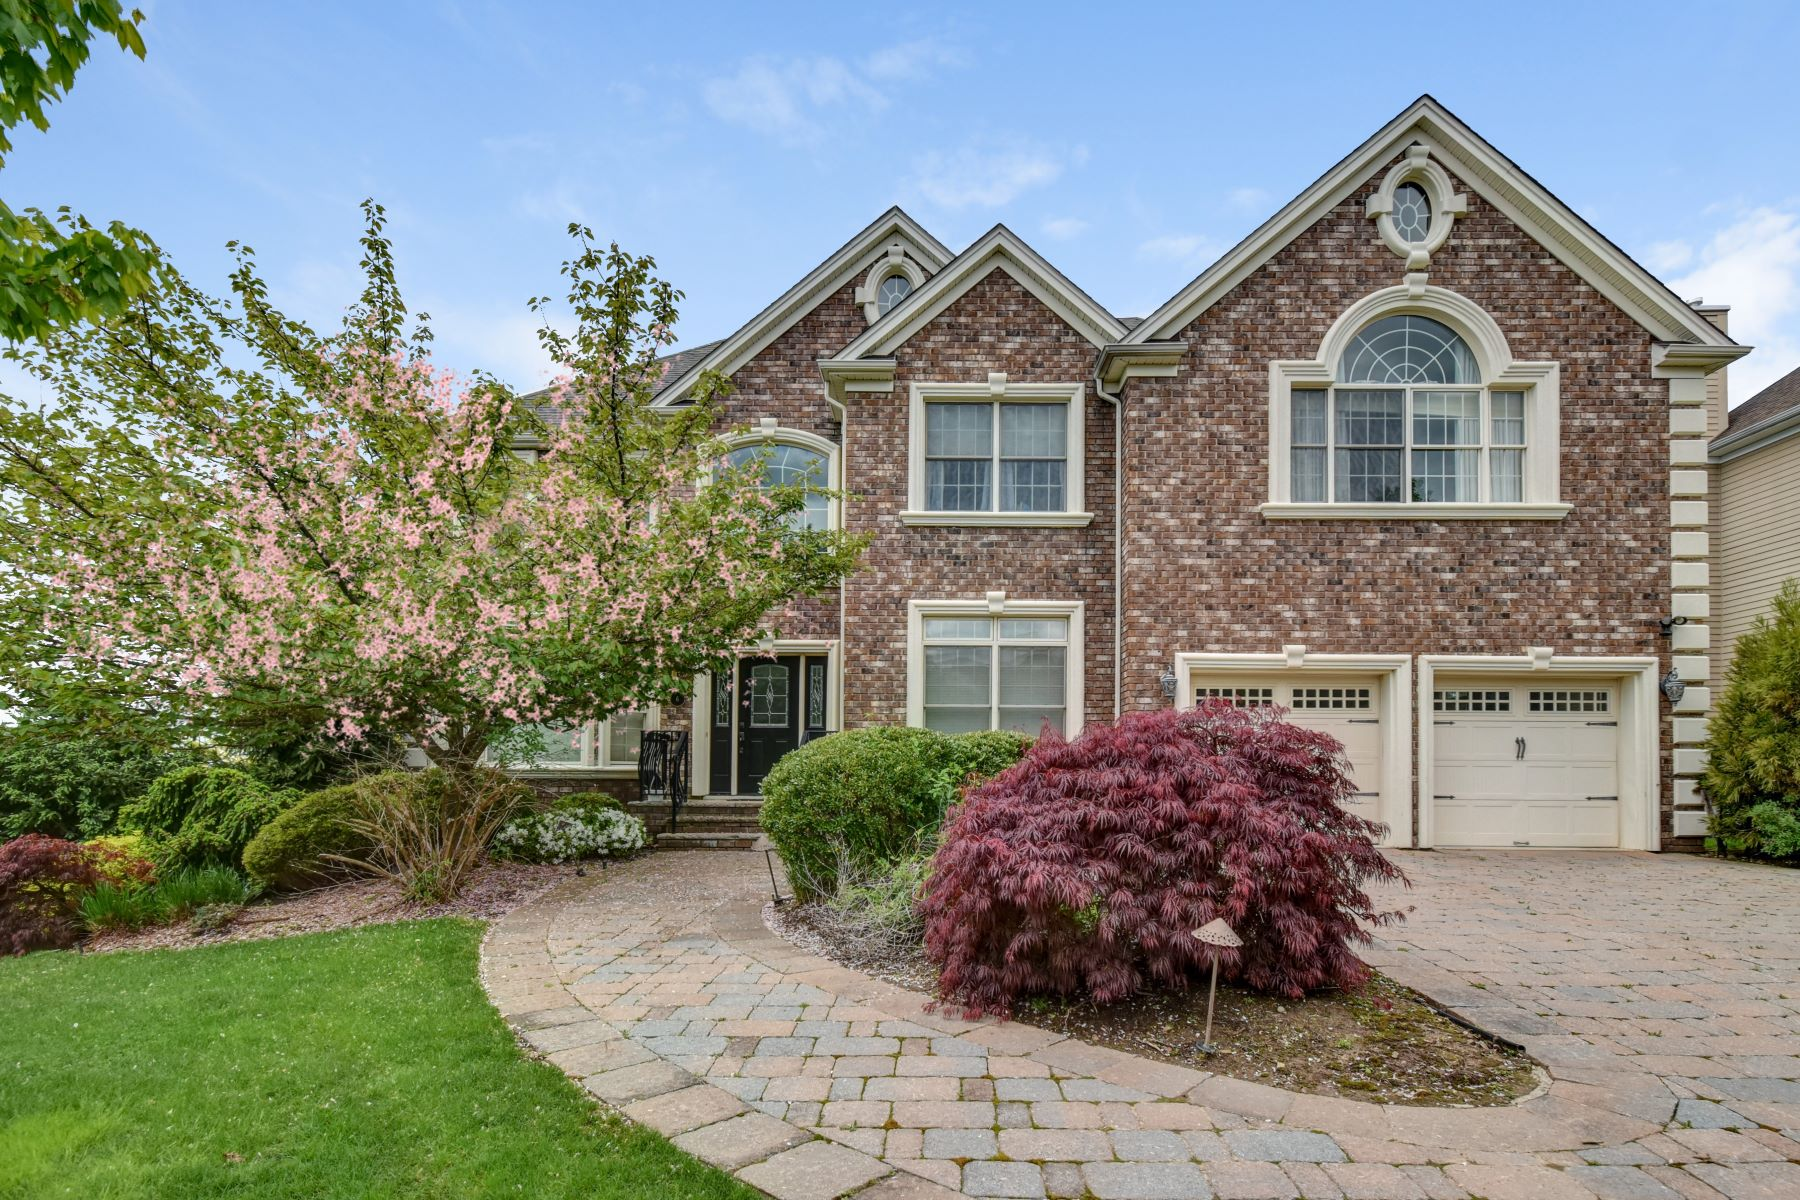 Single Family Homes for Active at Hillside Heights Custom Colonial 6 Marisa Court Livingston, New Jersey 07039 United States